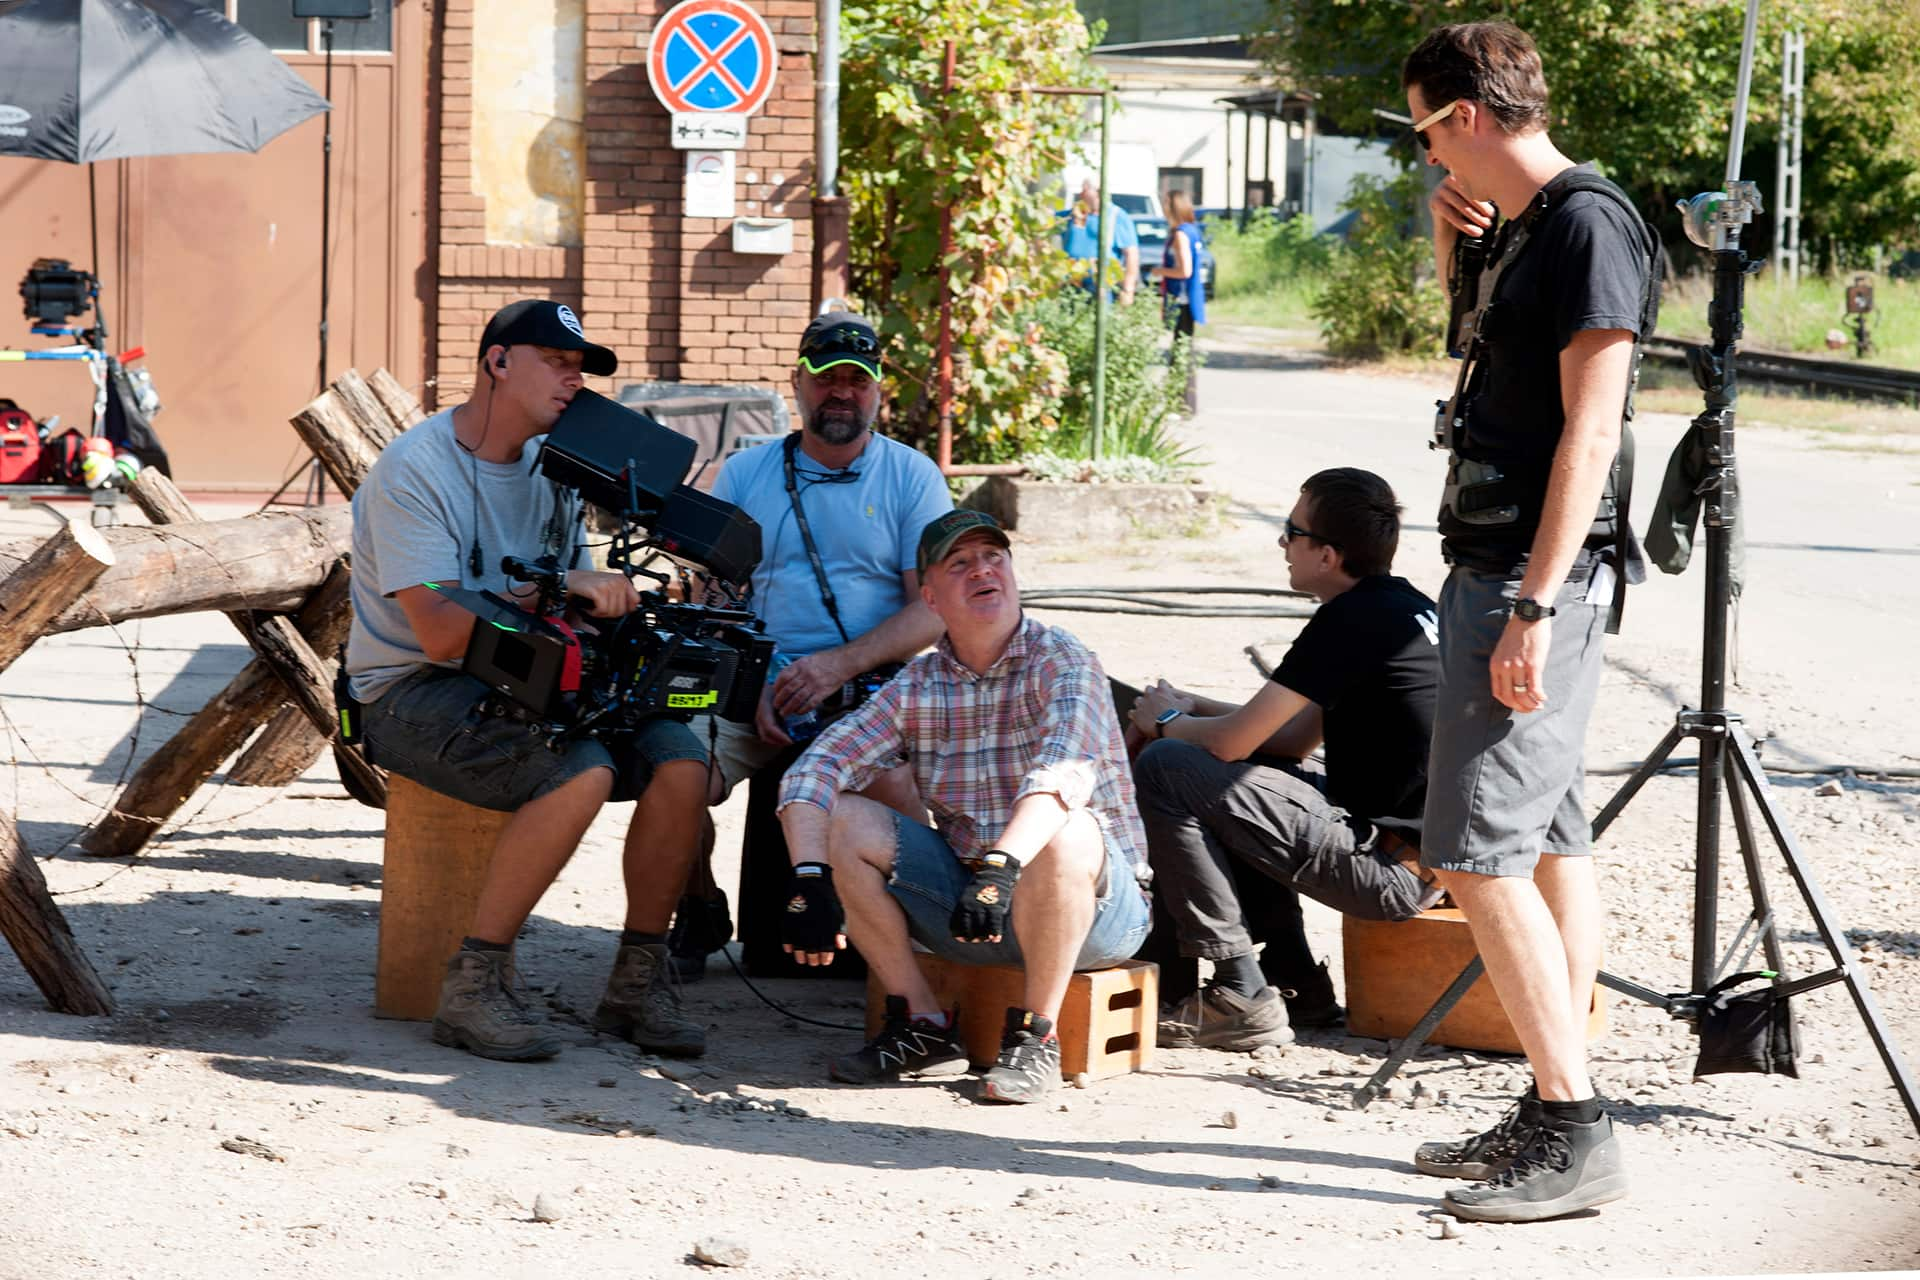 Behind the scenes on the set of X Company Season 3 with Camera Crew.